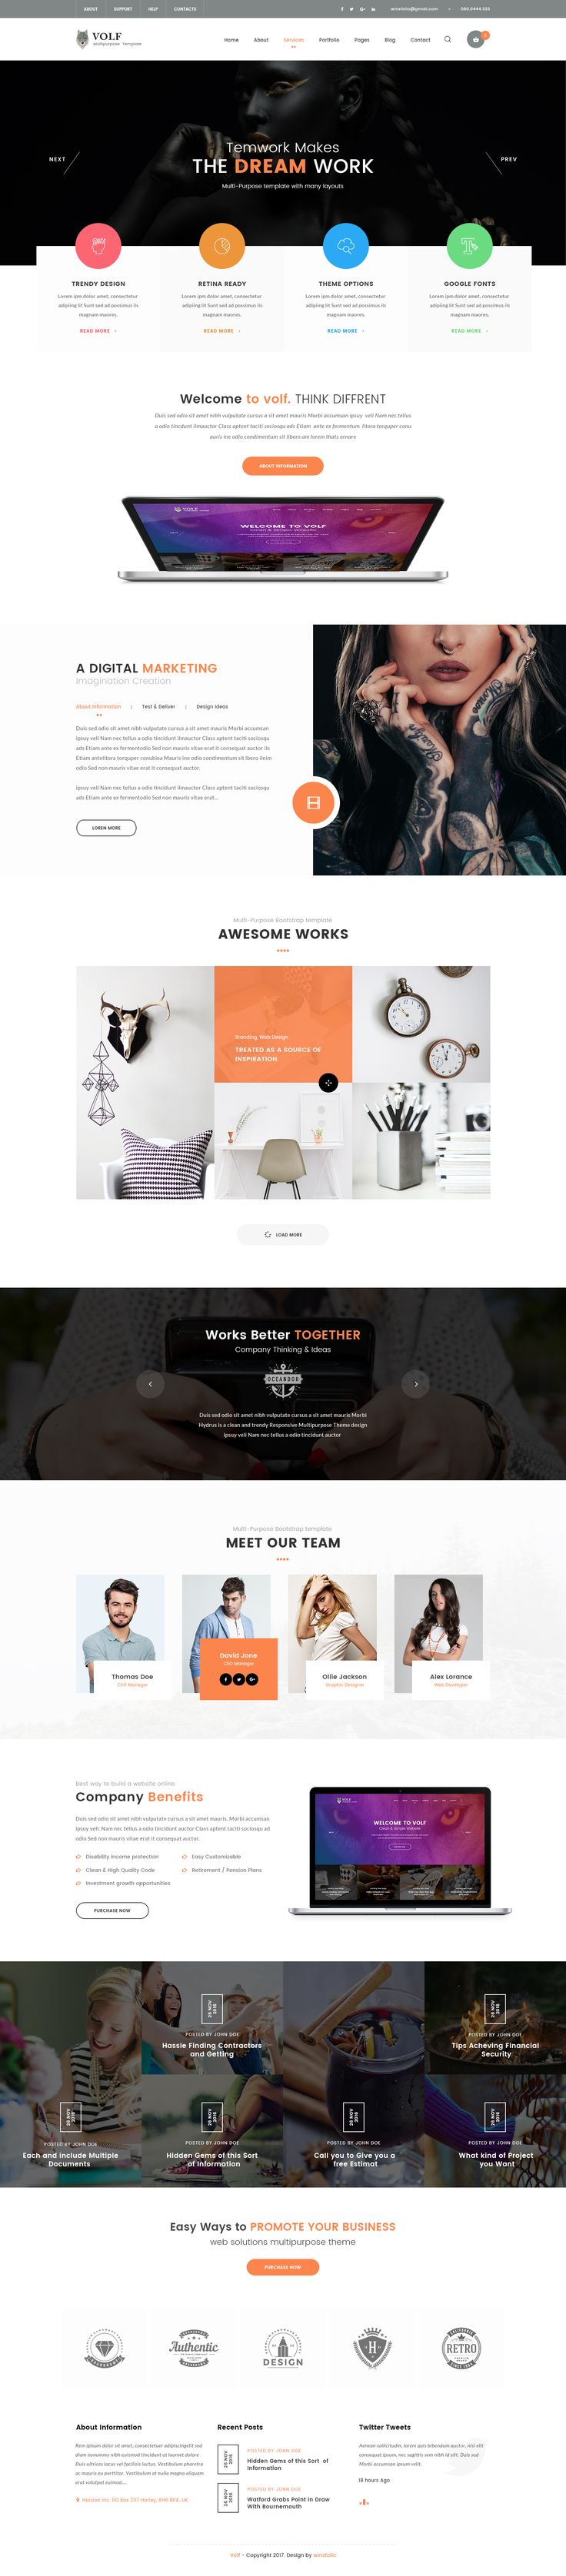 Volf - Creative Multipurpose PSD Template by winsfolio | ThemeForest